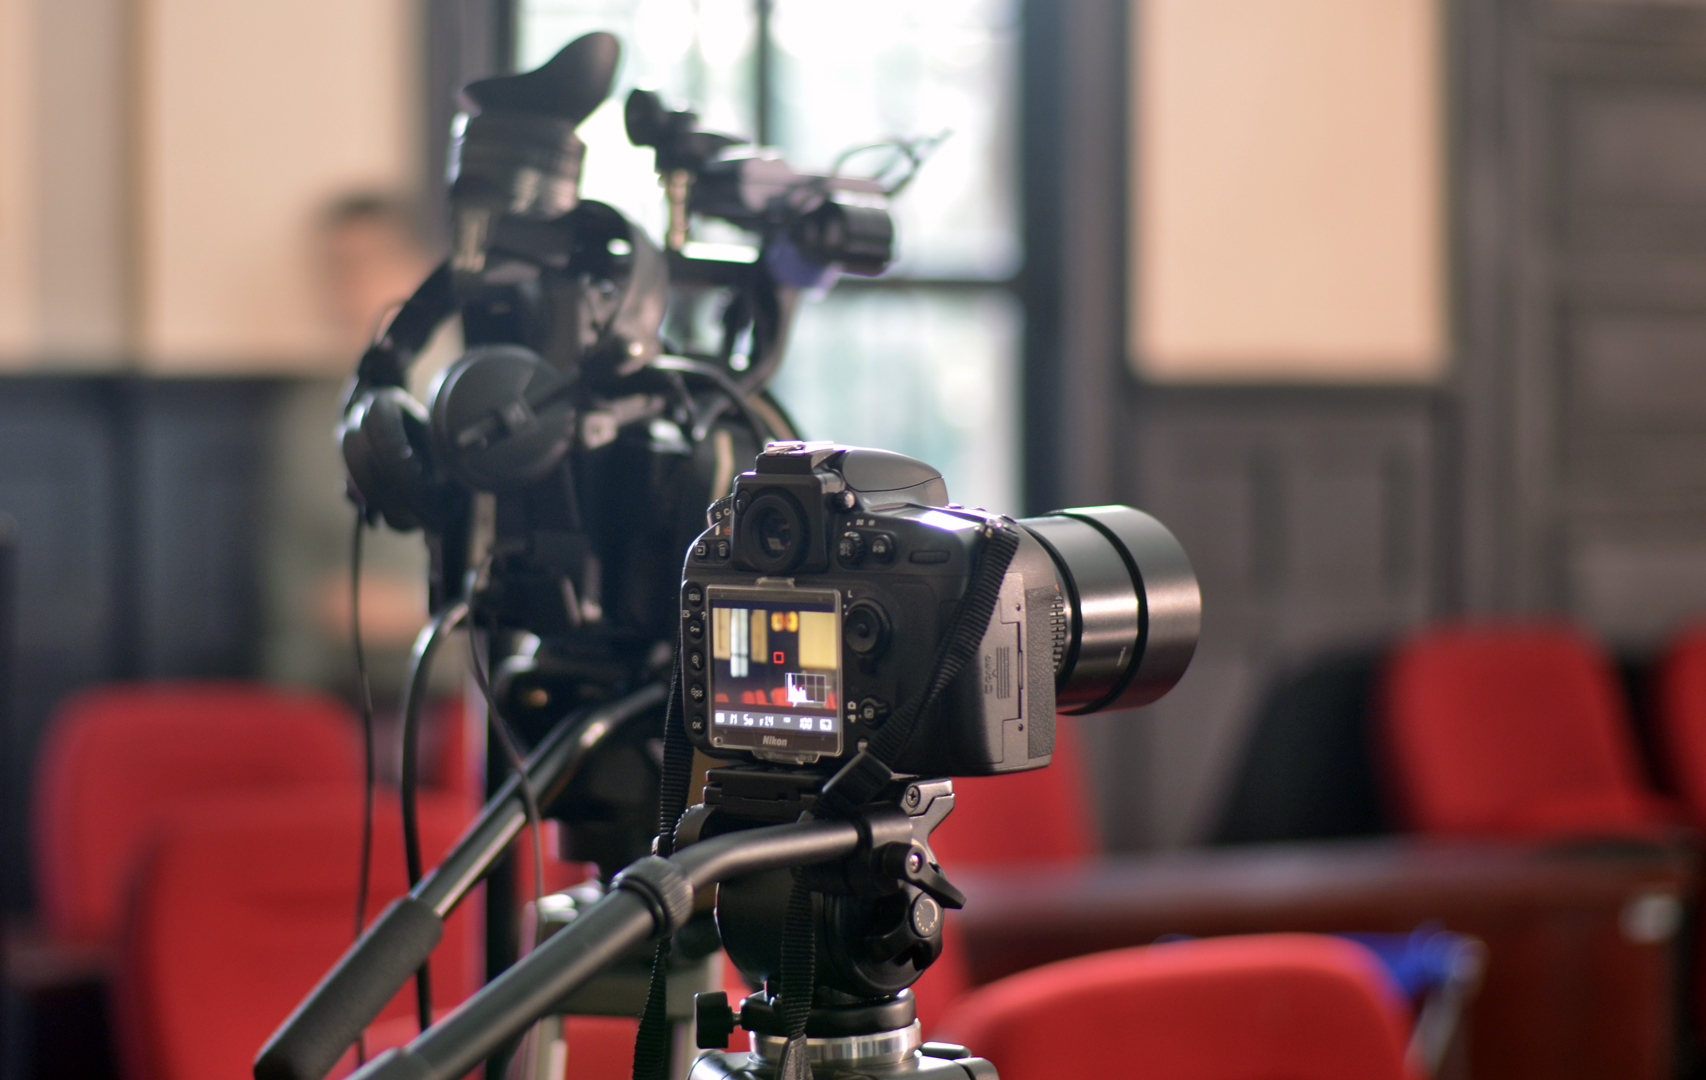 All cameras and equipment is provided by Franc who has an arsenal of film making gear at hand. (photo: Diarmuid)